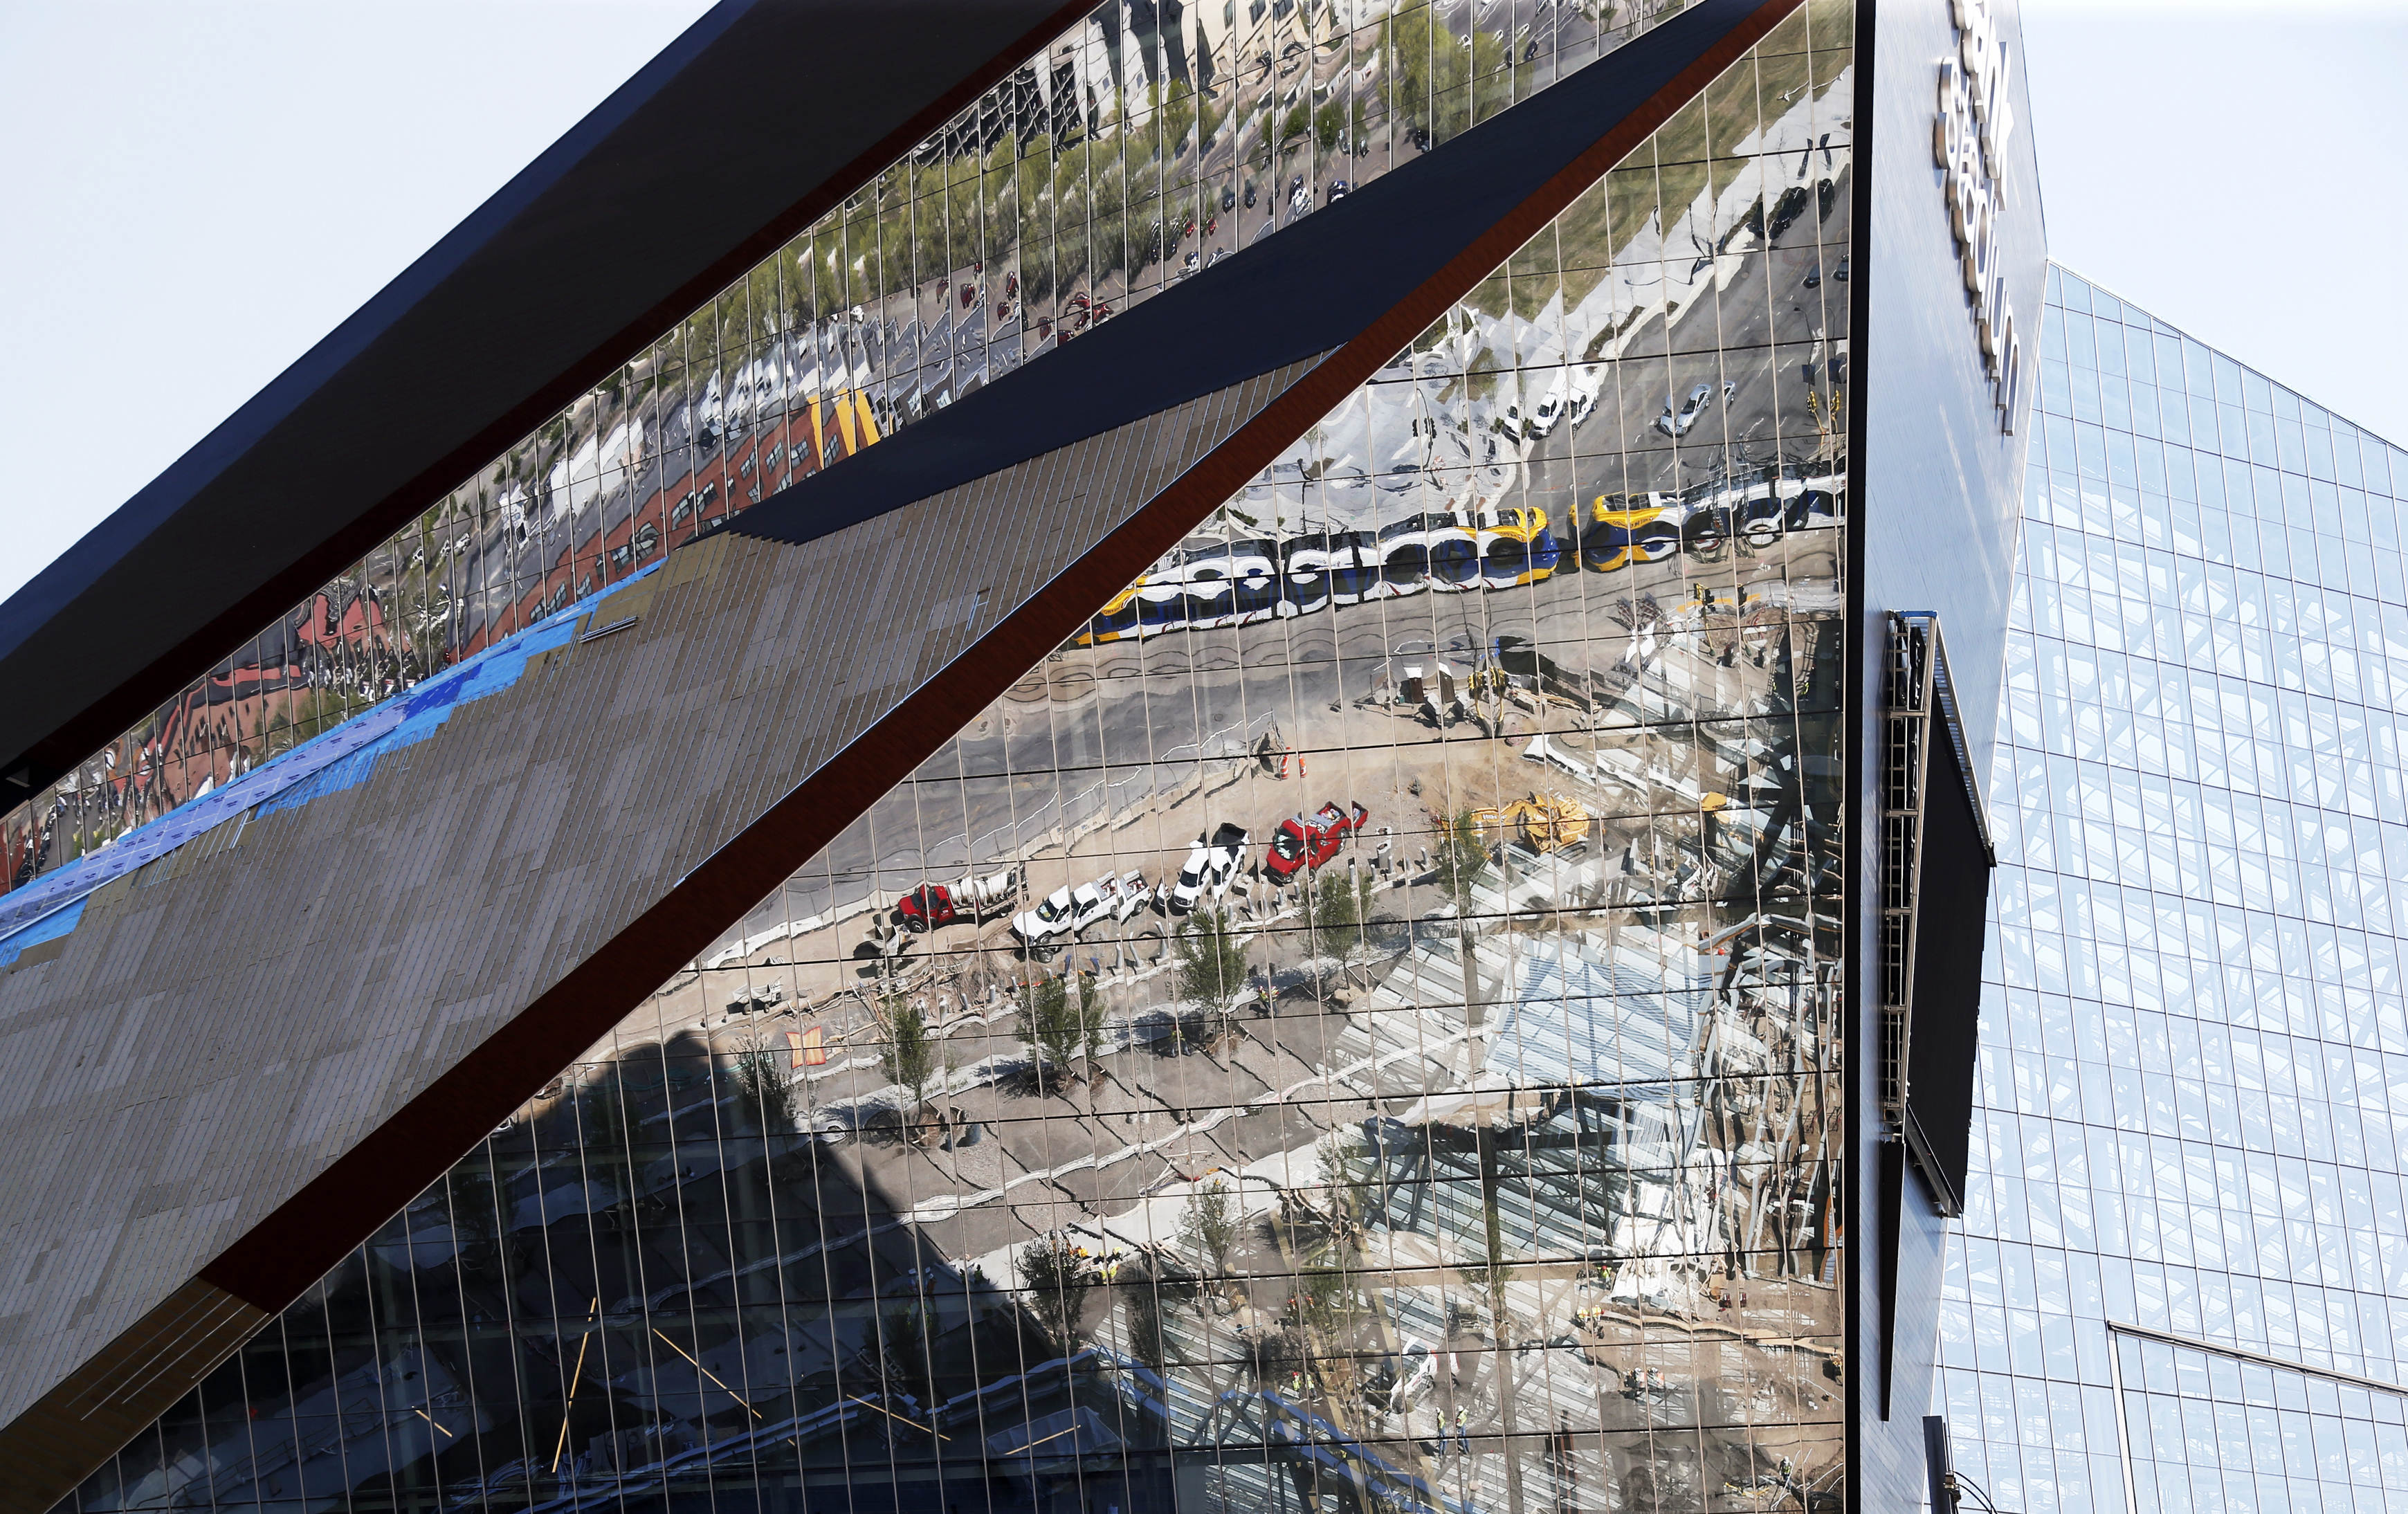 Newly planted trees and a light rail train are reflected in the facade of the new $1.2 billion U.S. Bank Stadium, the new stadium for the home to the Minnesota Vikings NFL football team, Wednesday, May 5, 2016, in Minneapolis. (AP Photo/Jim Mone)